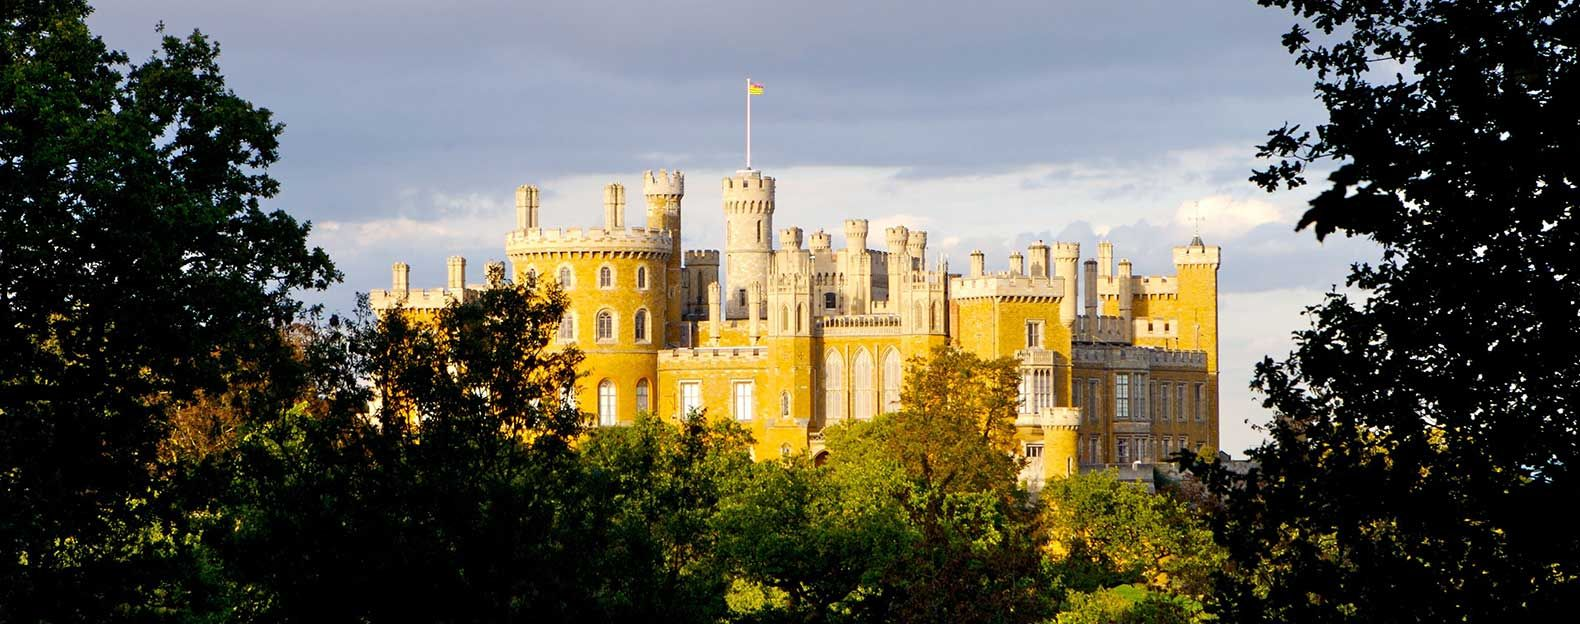 Belvoir castle leicestershire england i chose this picture